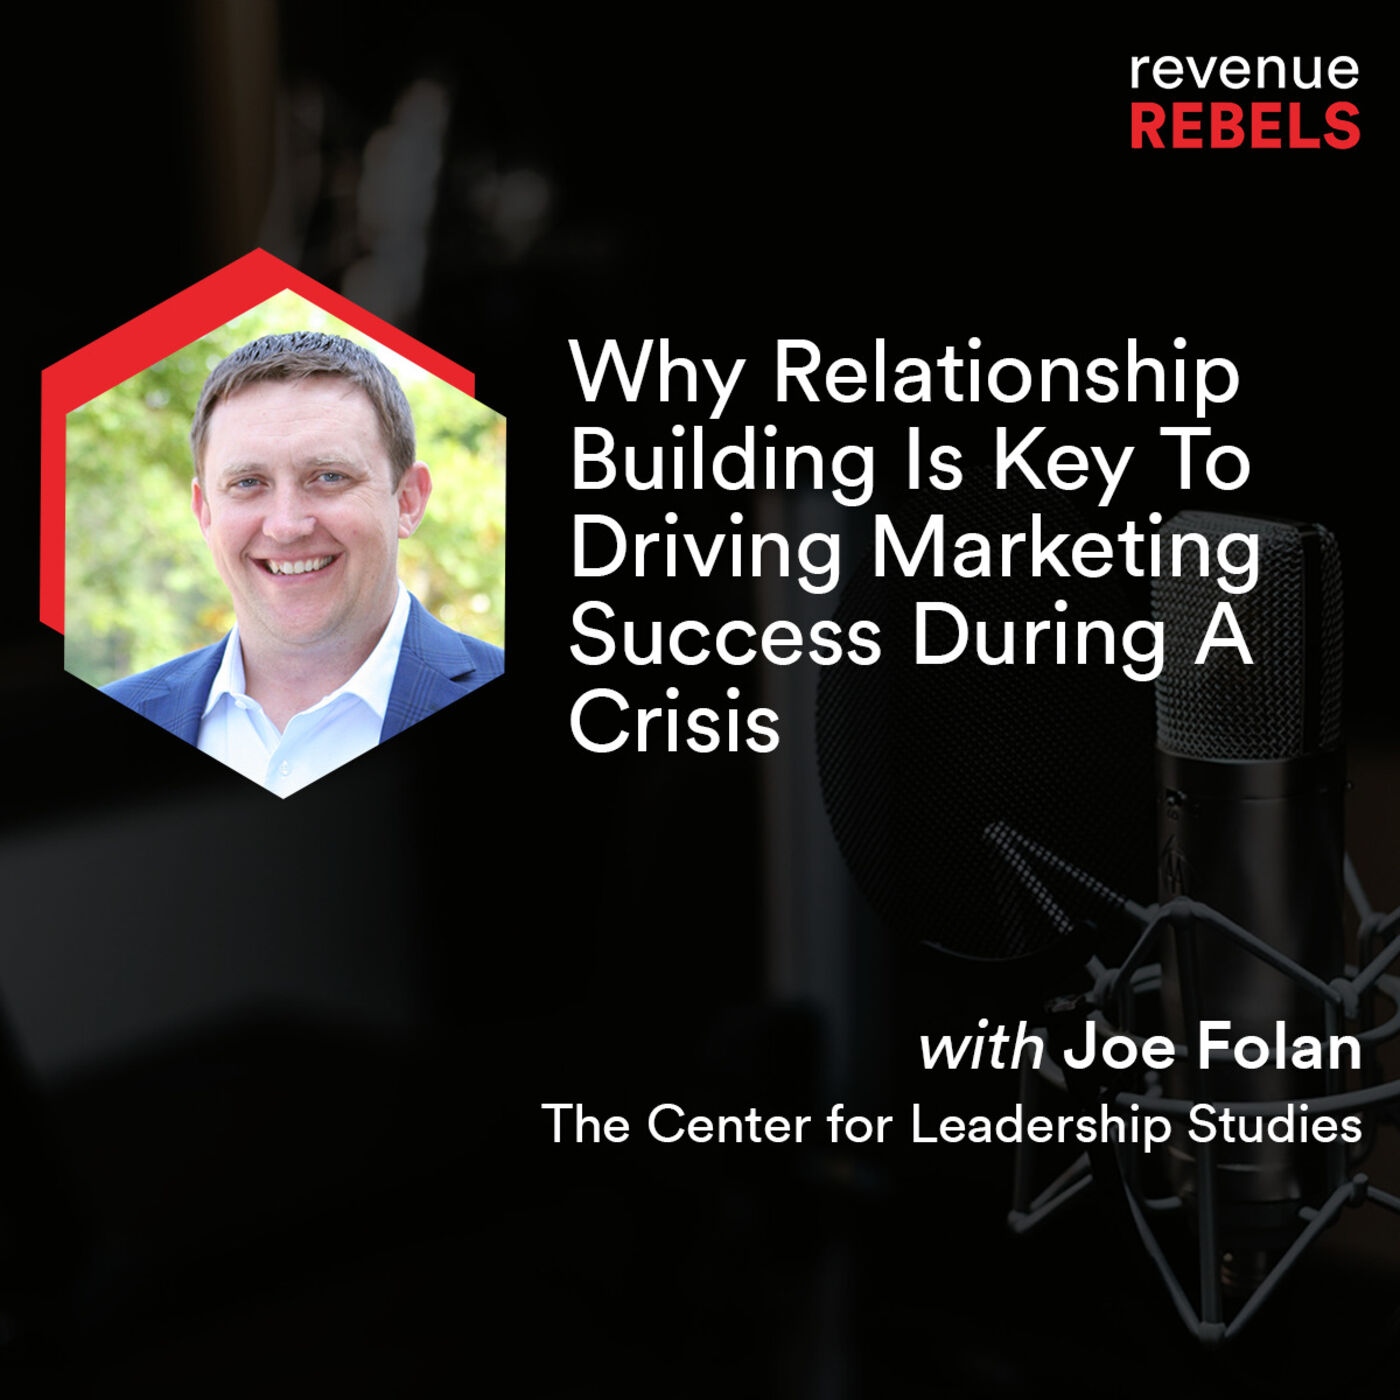 Why Relationship Building Is Key To Driving Marketing Success During A Crisis